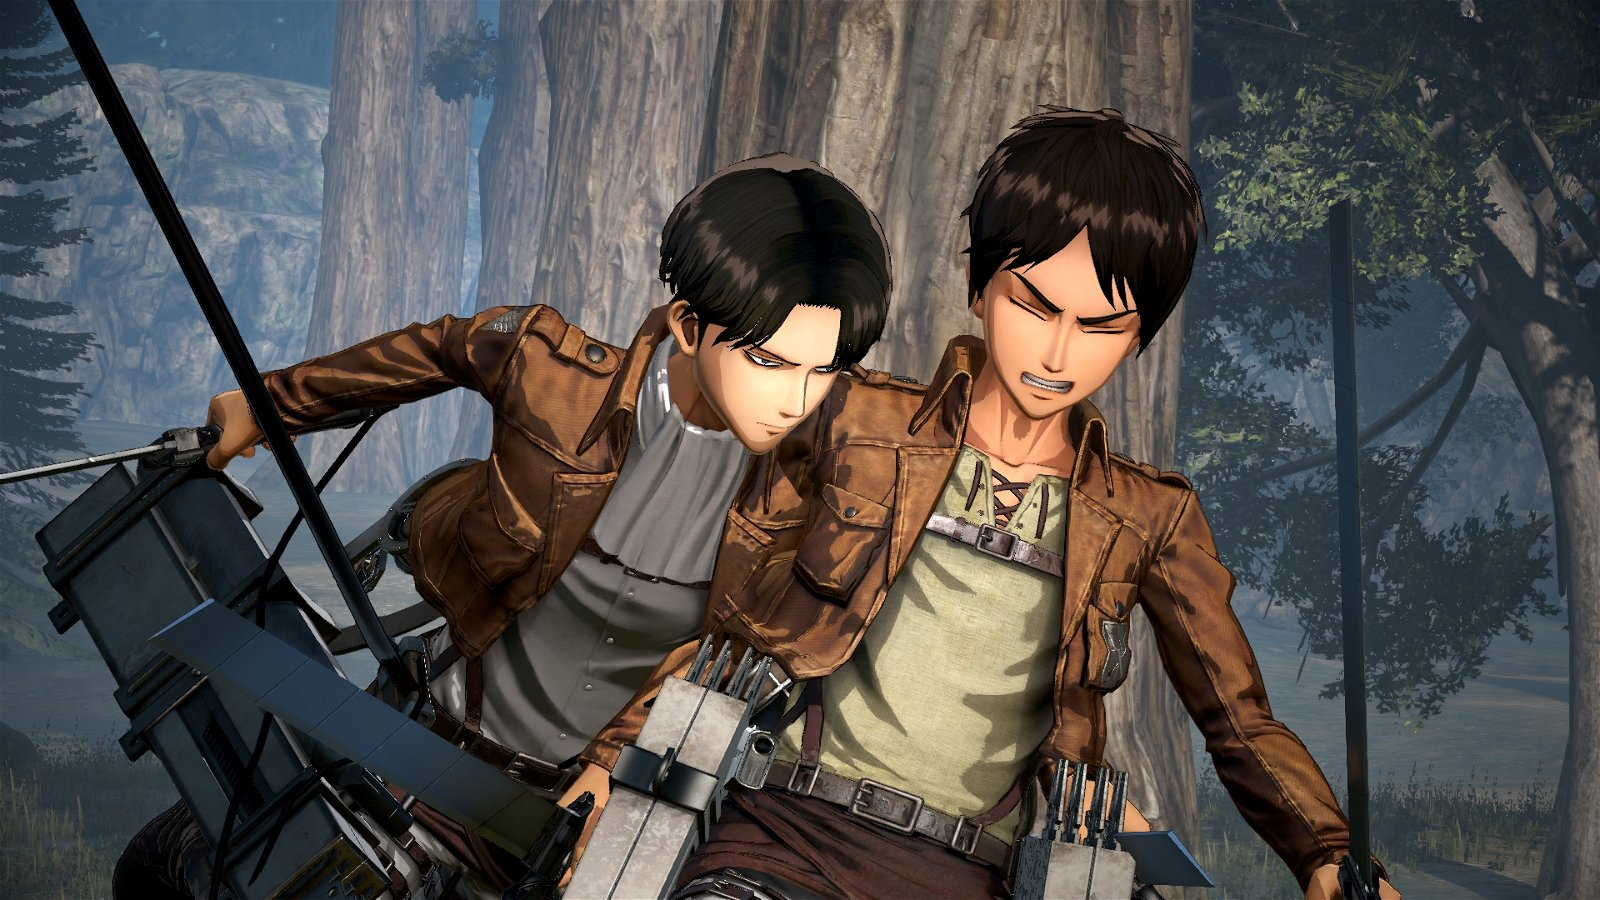 Abandon all fear. Attack on Titan 2 is the gripping sequel to the action game based on the worldwide hit anime series